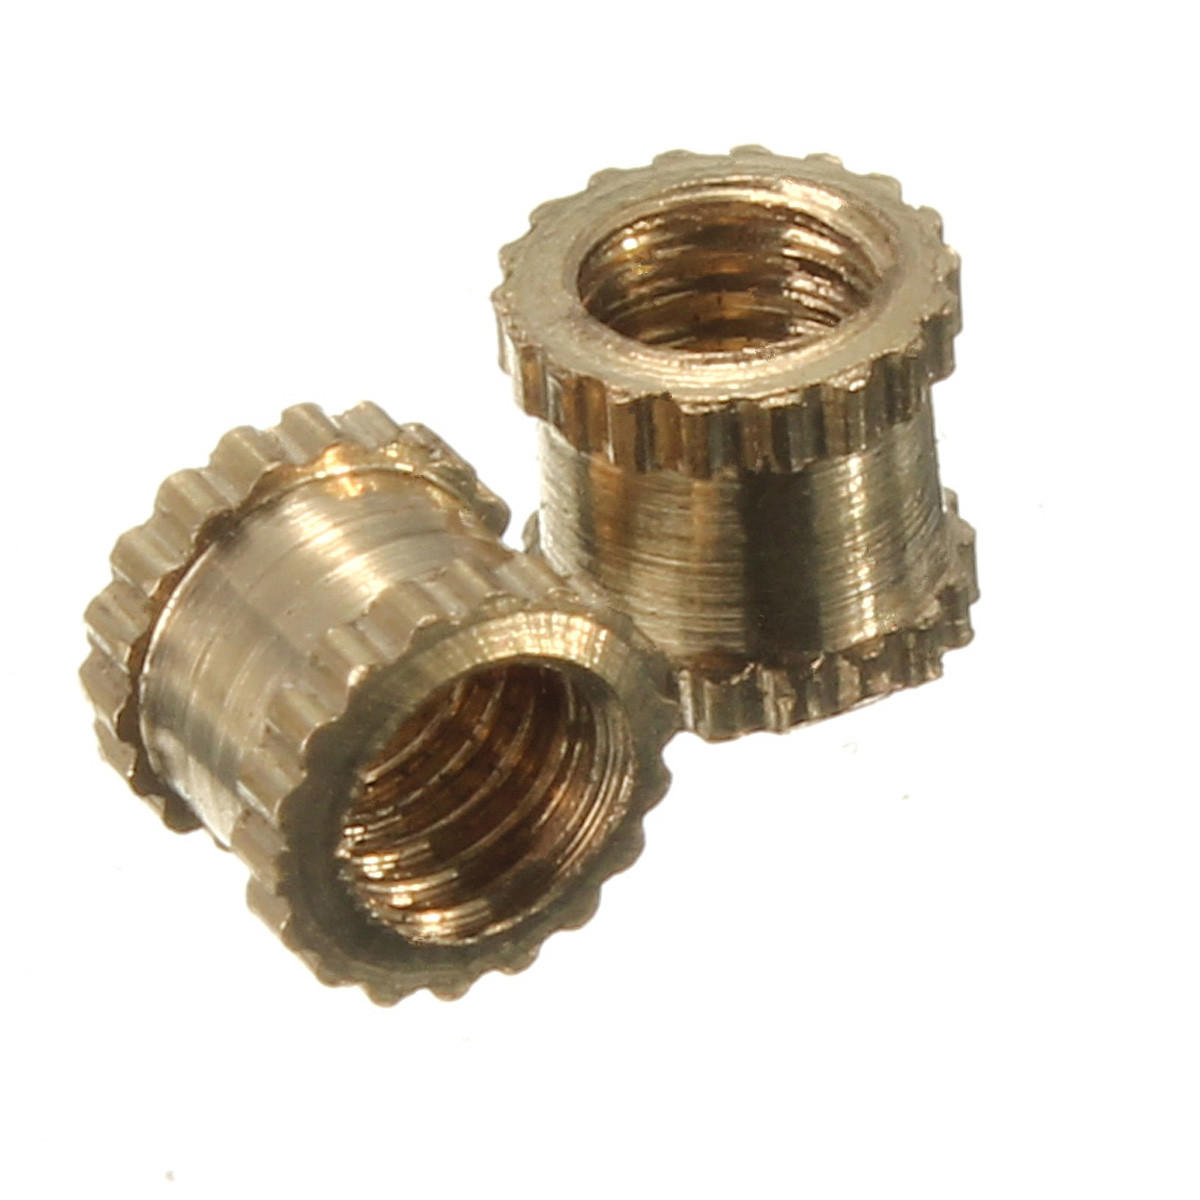 Suleve™ M3BN1 M3*4mm H62 Brass Knurl Nuts DIY Accessories 100pcs